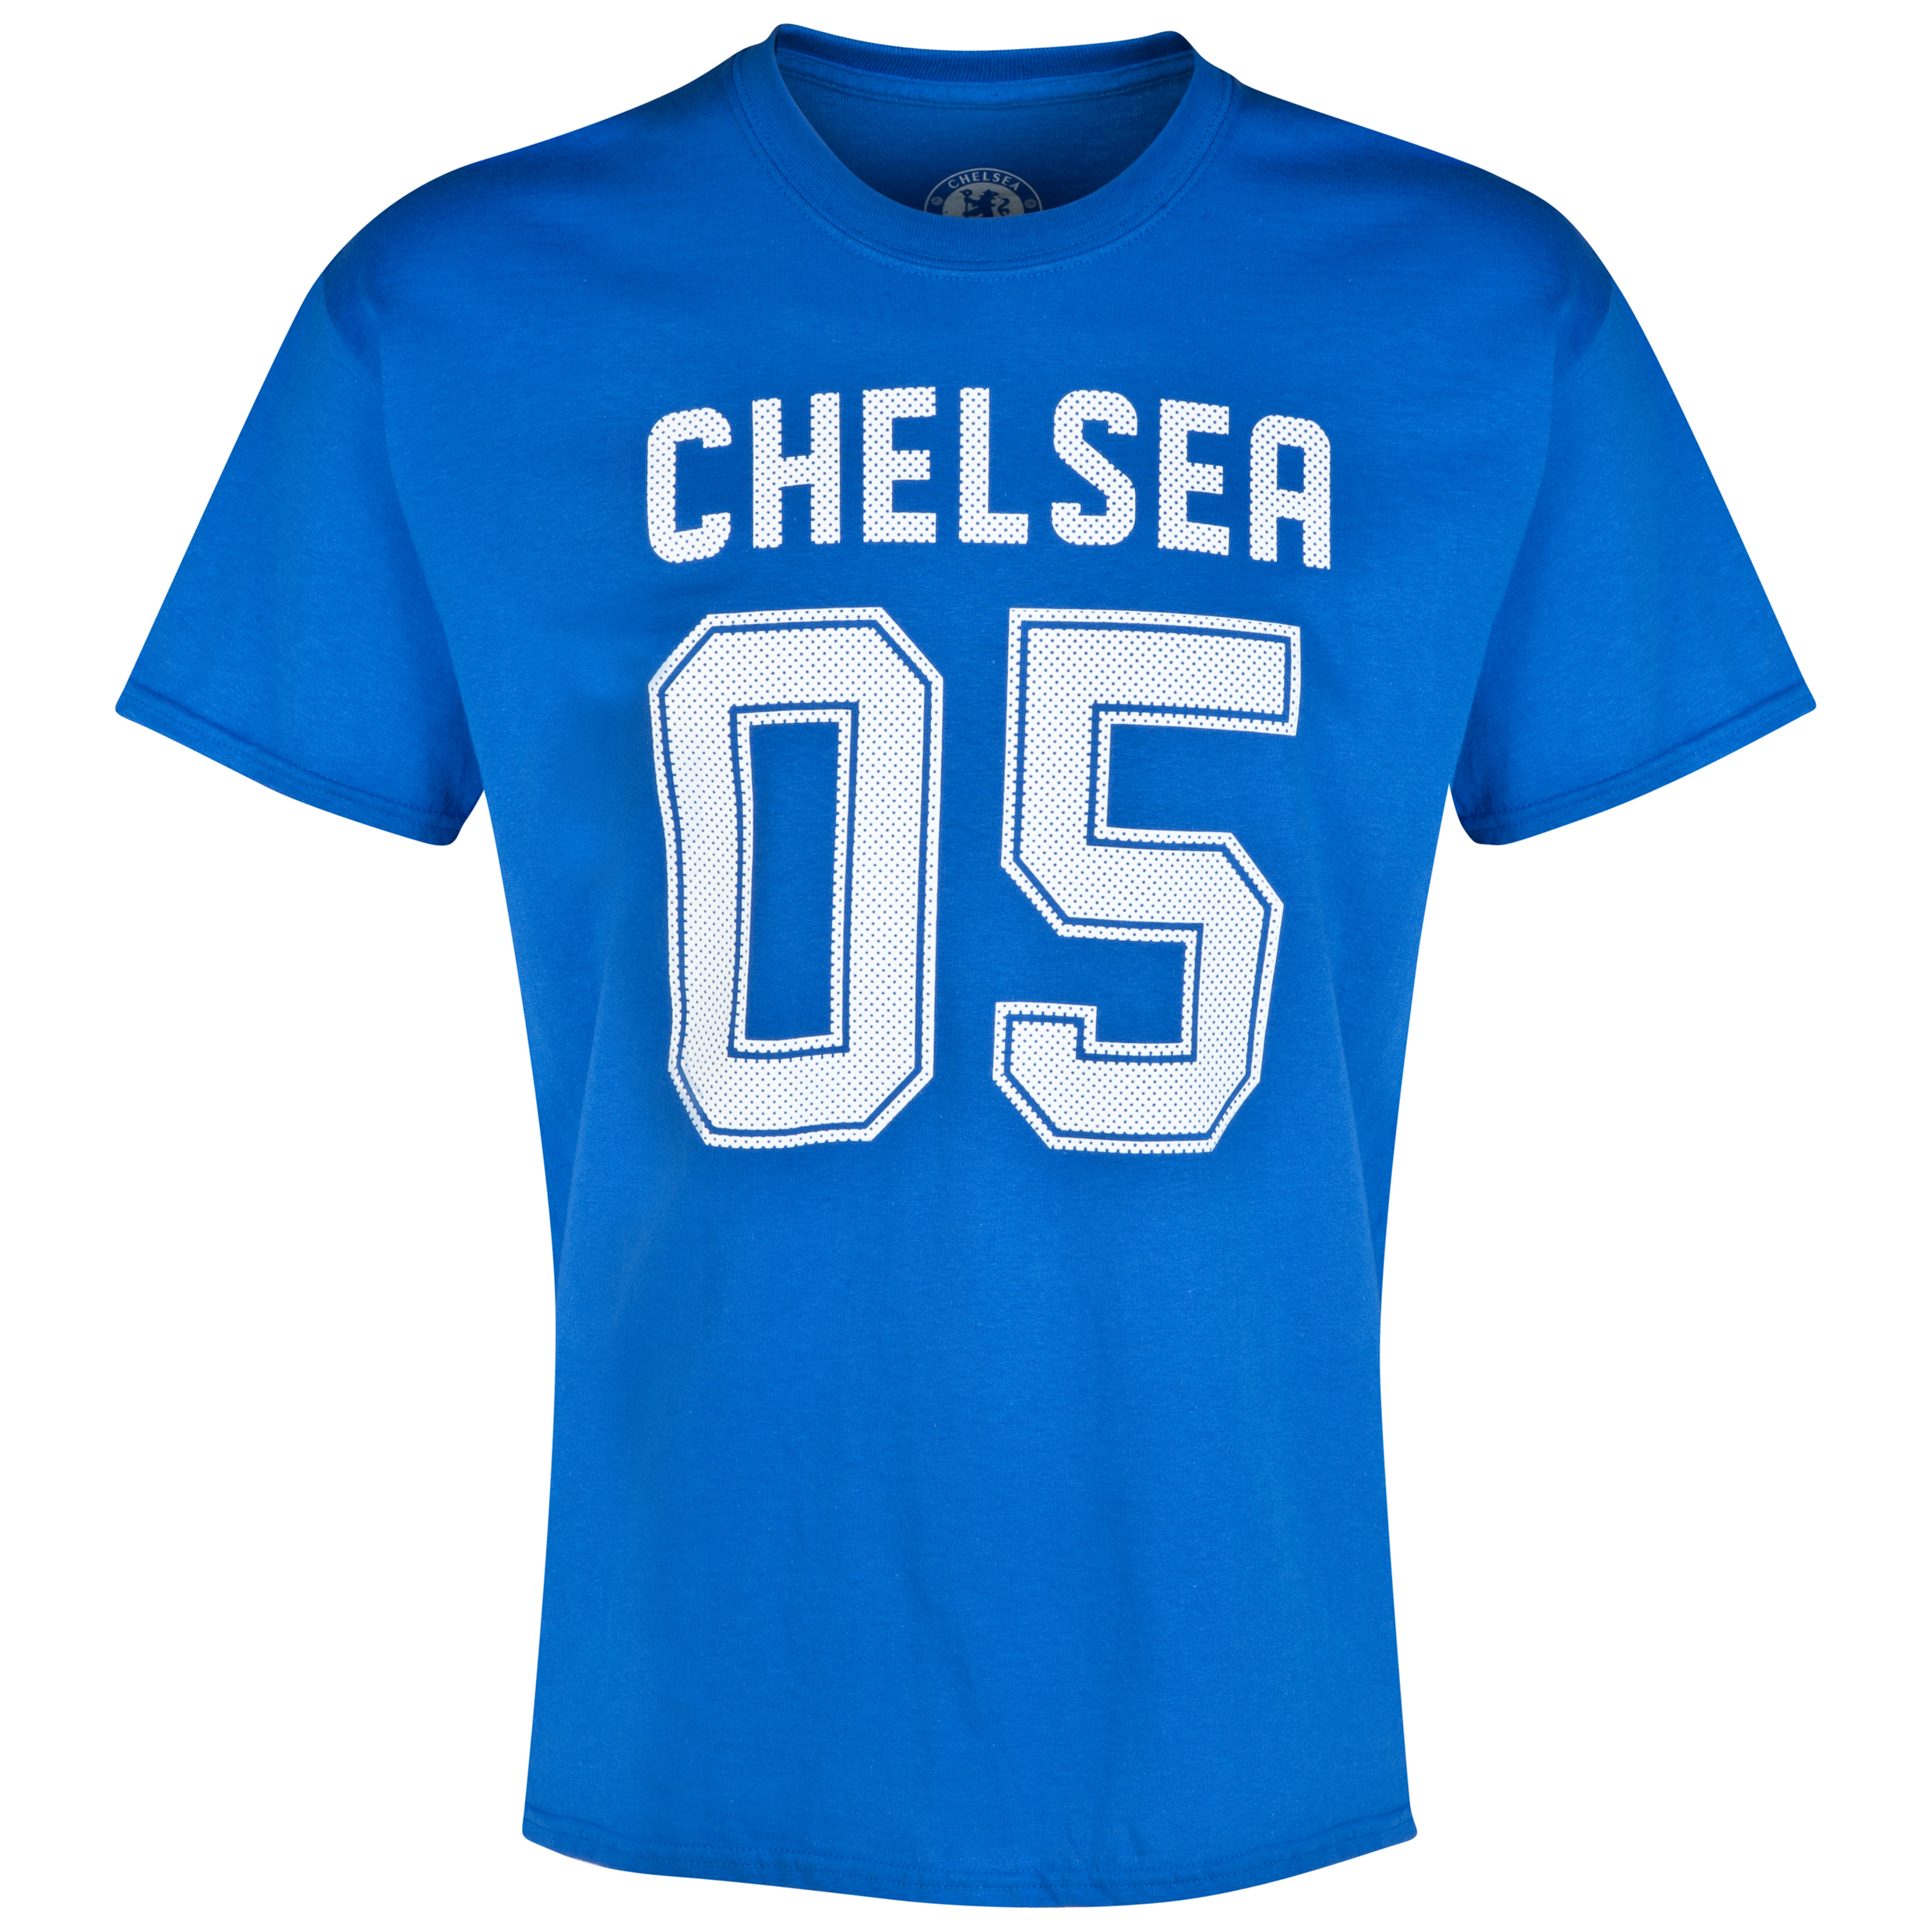 Chelsea 05 T-Shirt - Mens Royal Blue